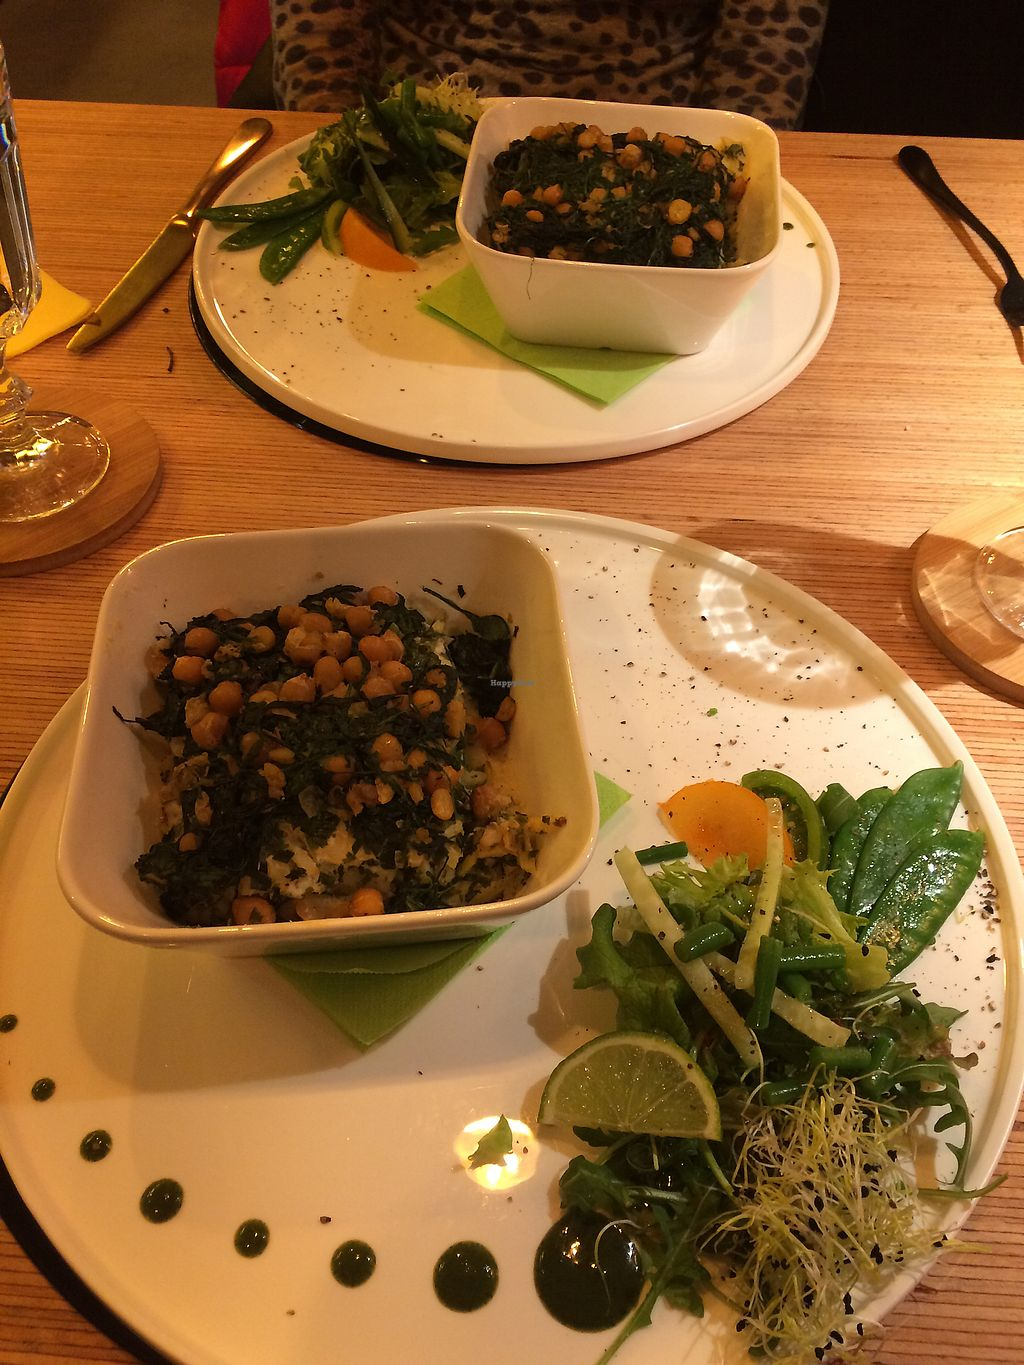 """Photo of hashtag food  by <a href=""""/members/profile/EvaDelagrange"""">EvaDelagrange</a> <br/>Vegan lunch <br/> January 18, 2018  - <a href='/contact/abuse/image/65956/348064'>Report</a>"""